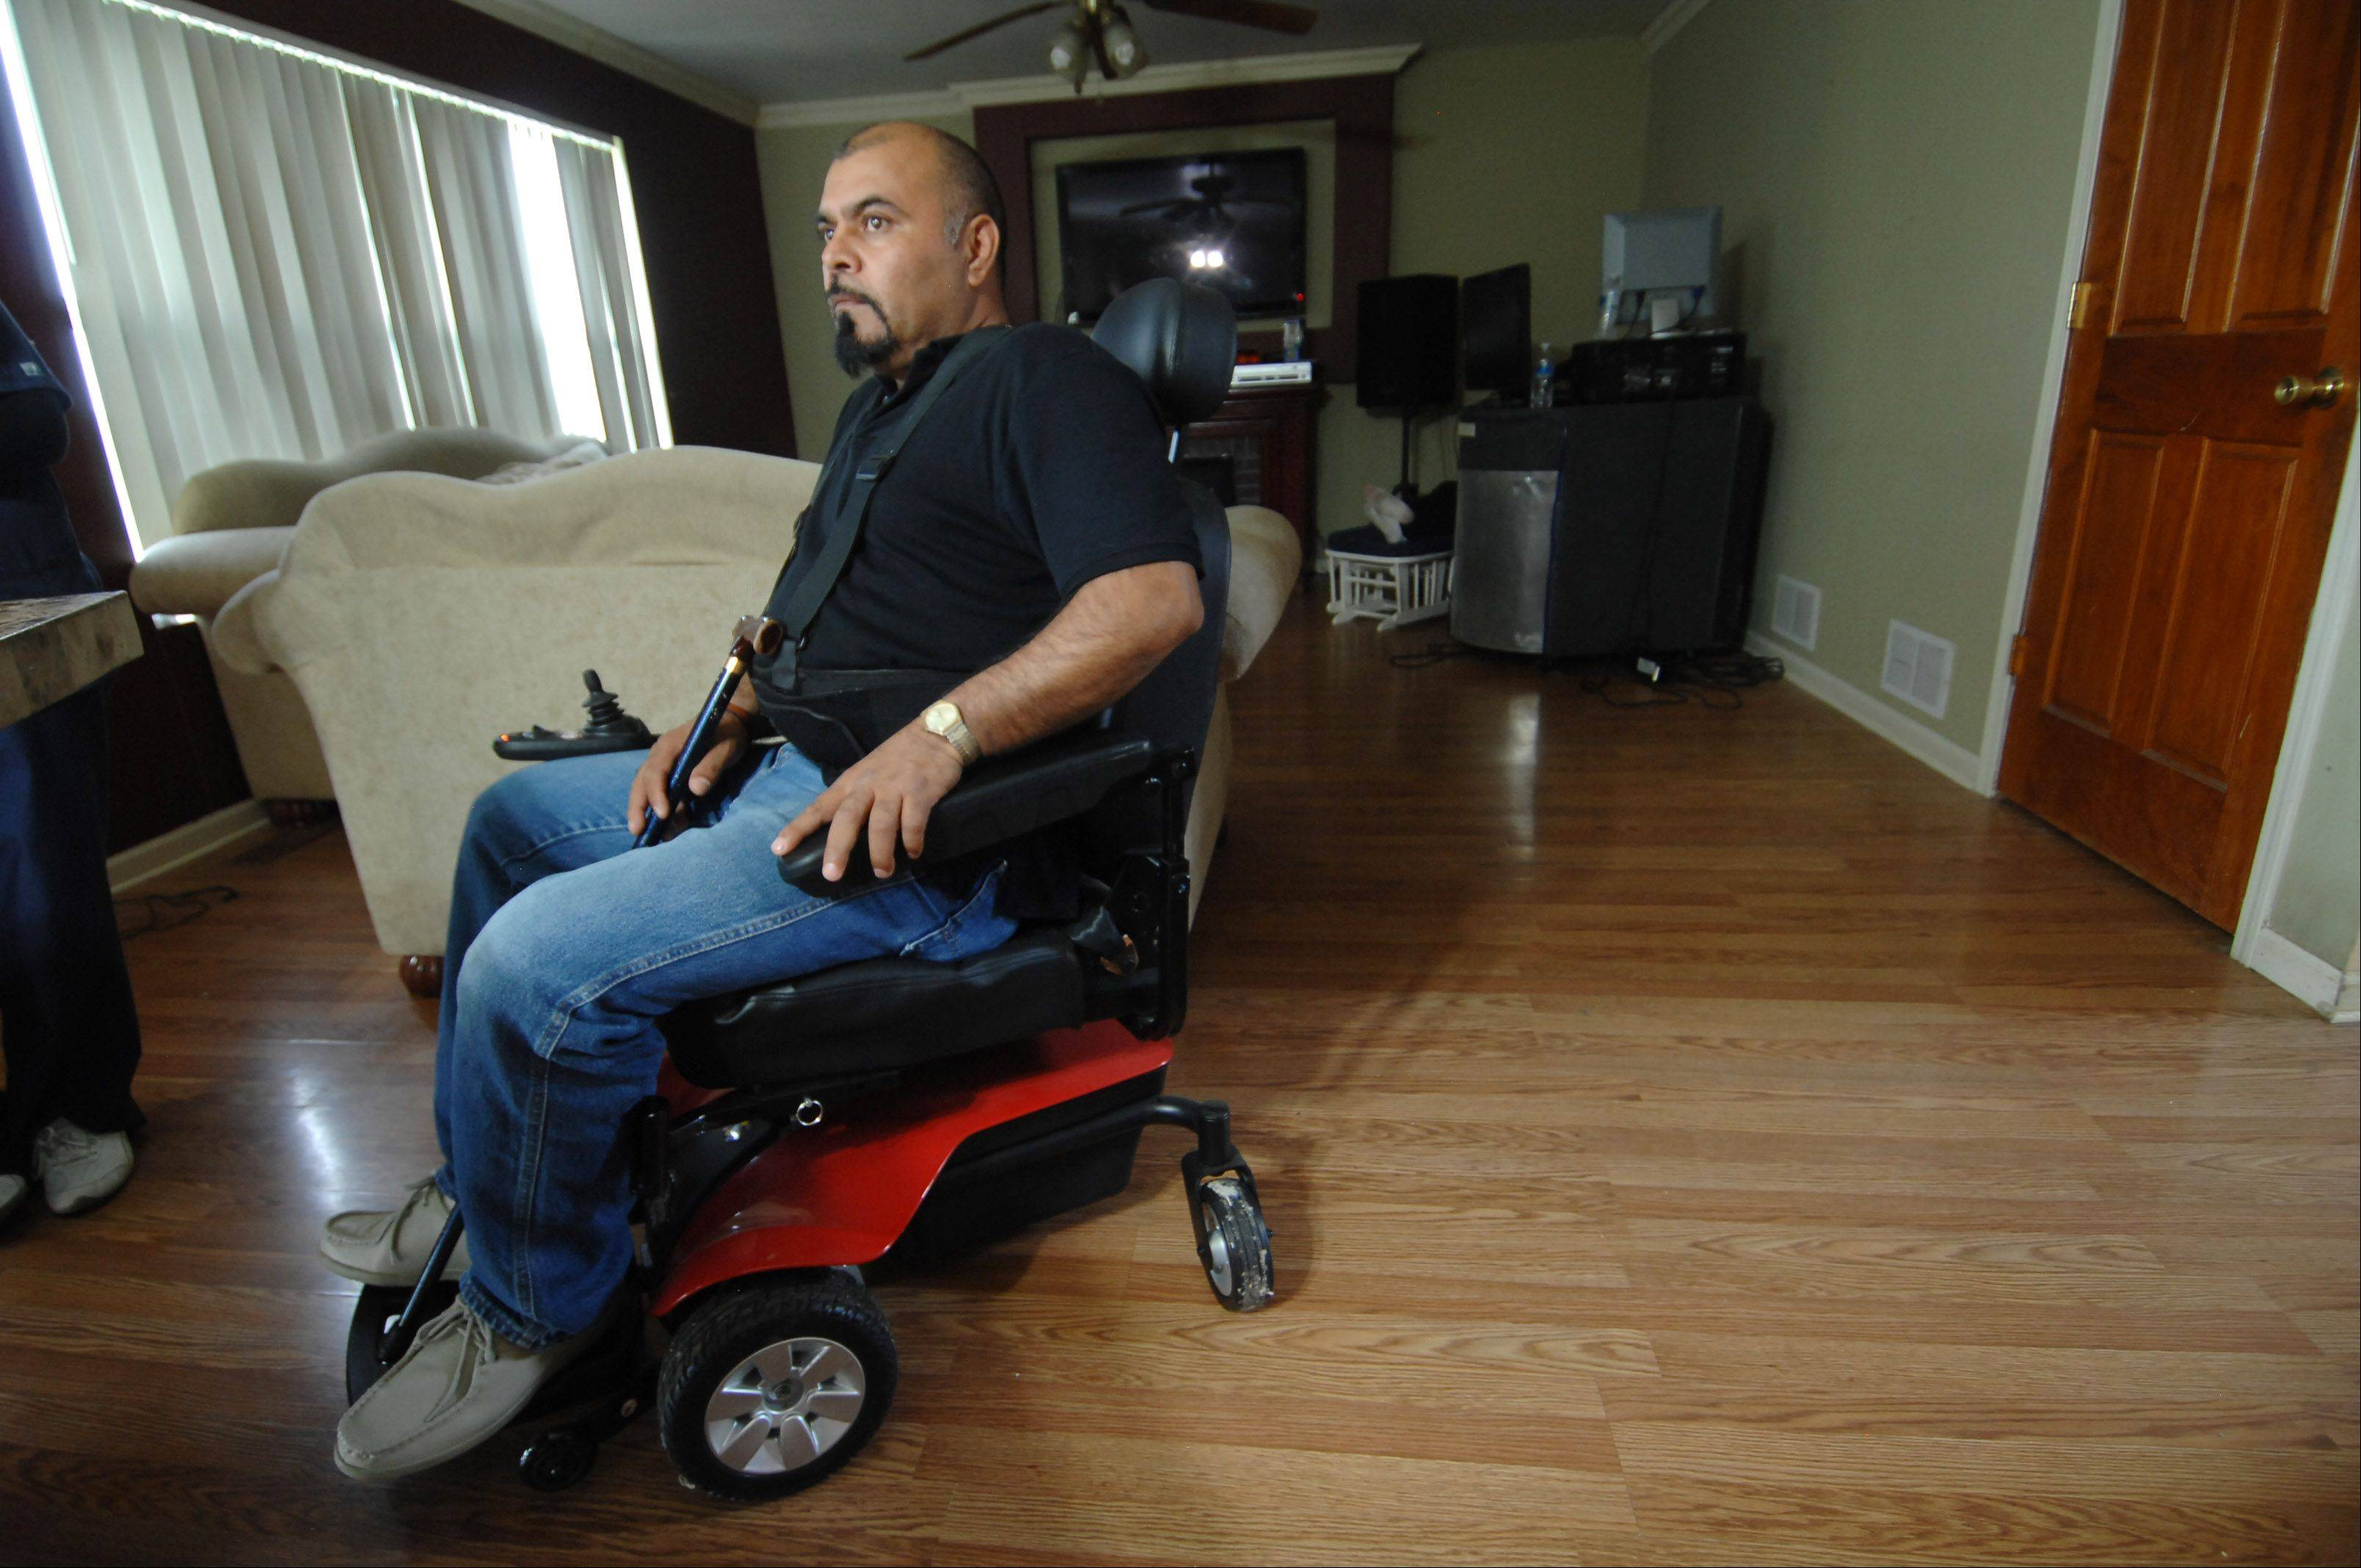 Because of several broken vertebrae and a shattered ankle, Francisco Valdez is unable to work and is losing the home he built with his own hands.